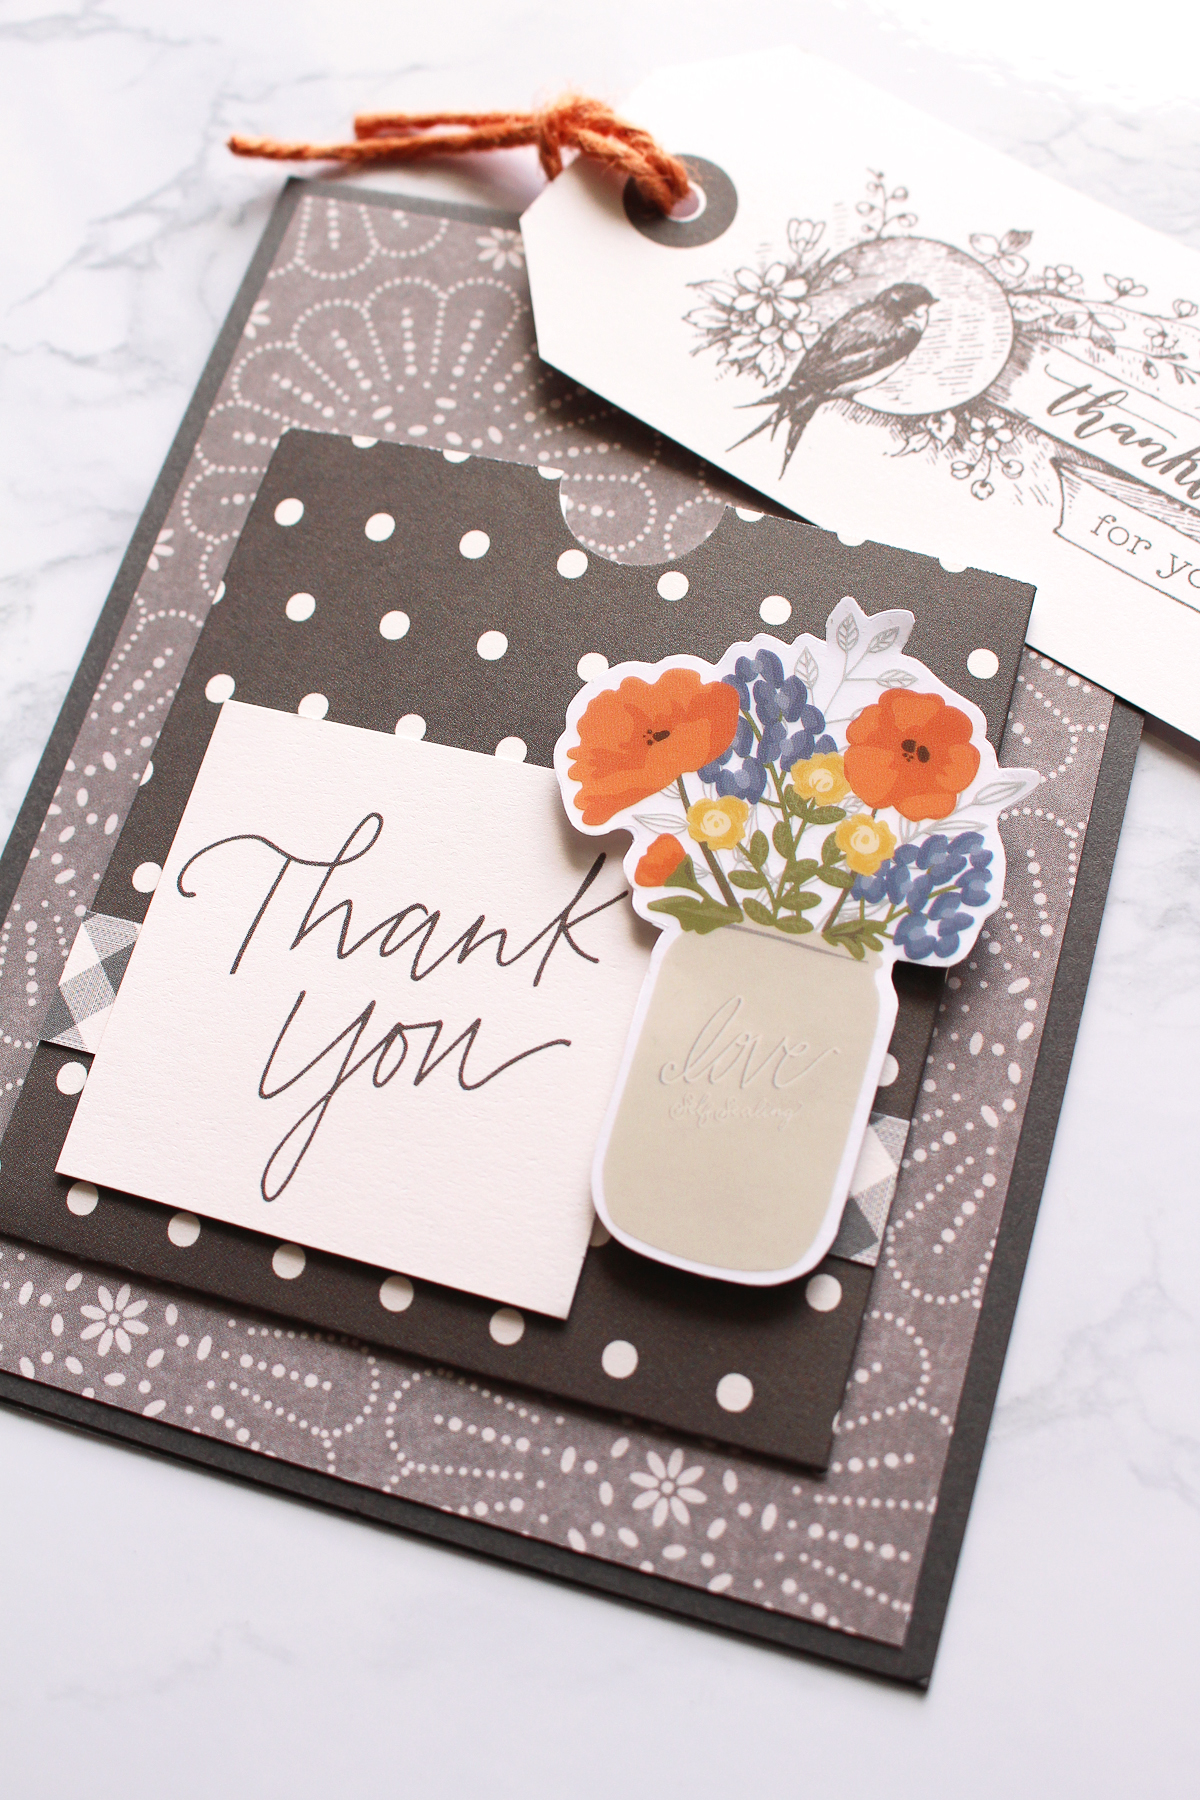 Thank You Cards featuring the Pocket Punch Board by Kimberly Crawford for We R Memory Keepers